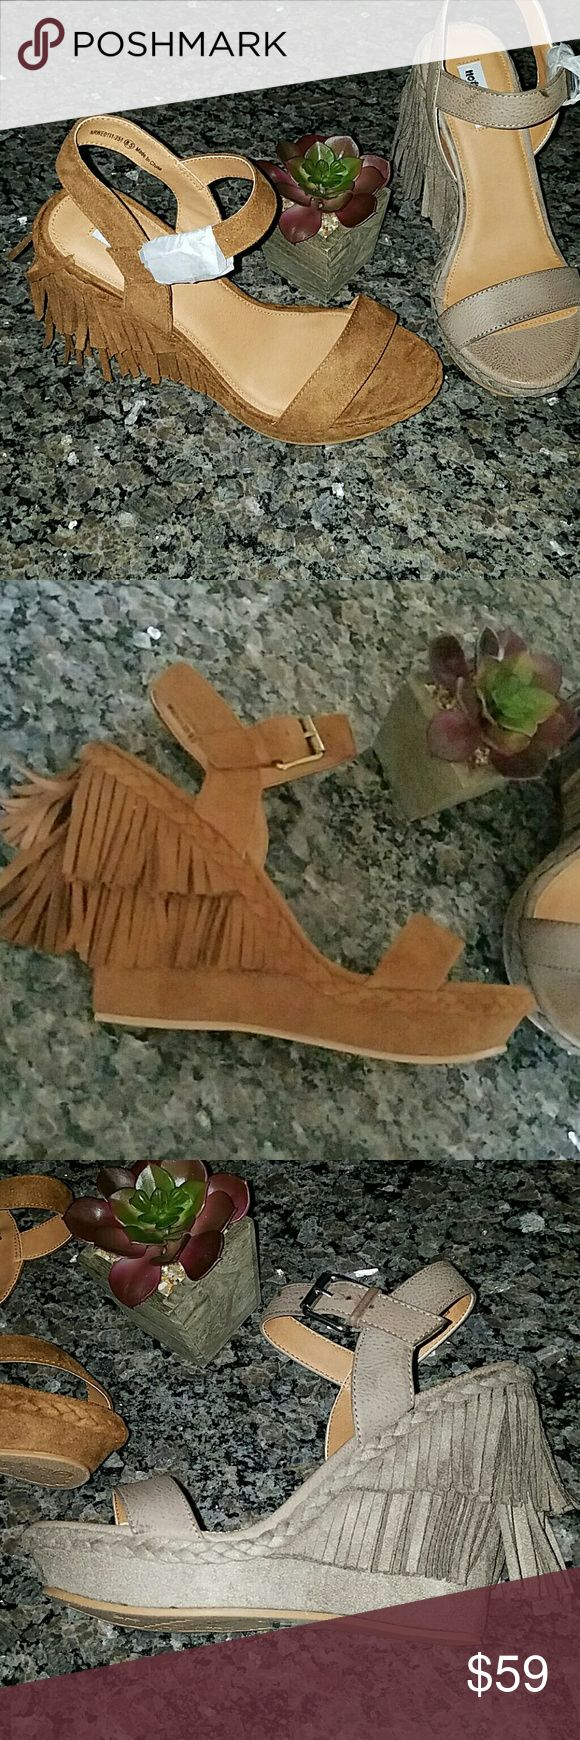 ✔Not Rated Roaring Ruby Fringe Wedge Sandals Must have fun and chic Sandals!  ✔ Sales Priced ✔  Buckle closure Fringe sides and back Slightly pa...